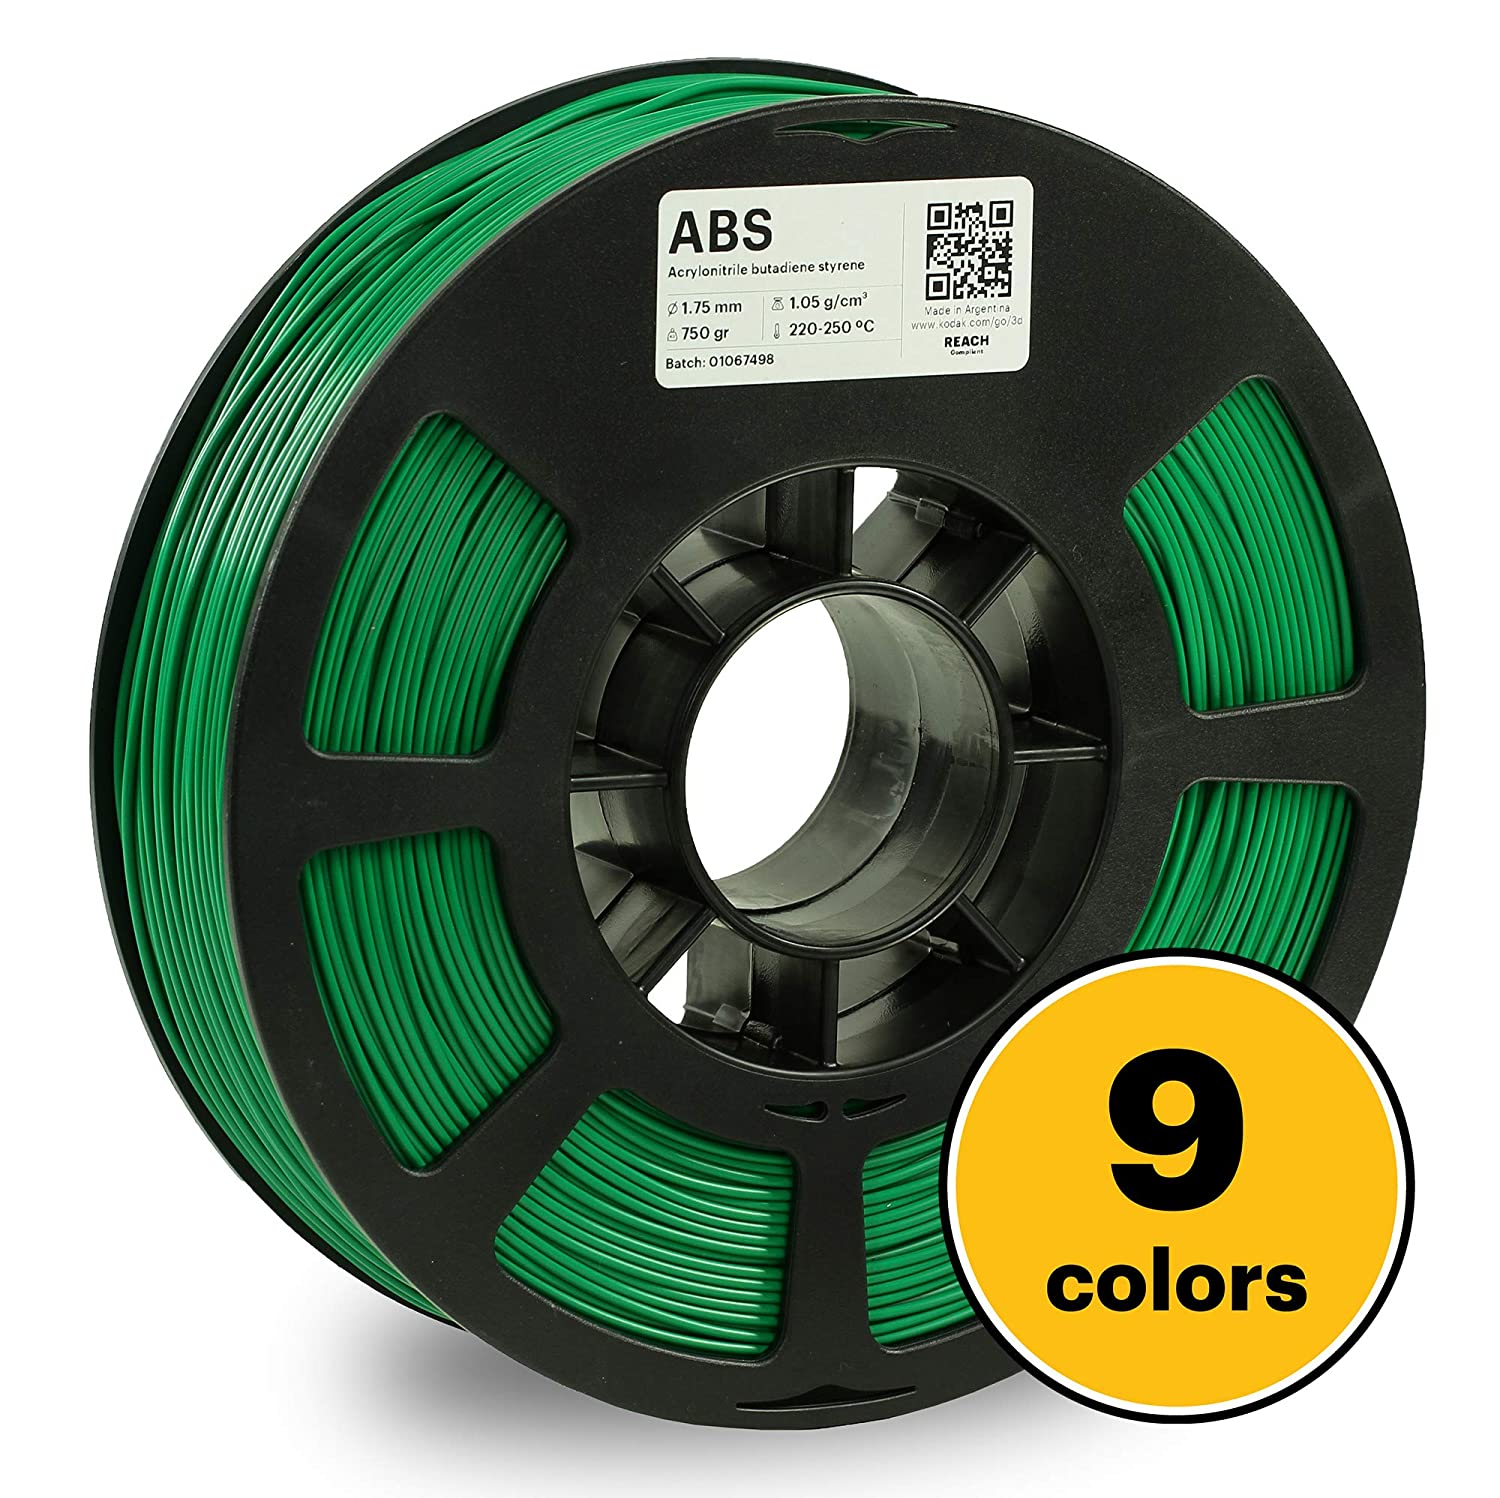 KODAK ABS Filament 1.75mm for 3D Printer, Green, Dimensional Accuracy +/- 0.03mm, 750g Spool (1.7lbs), ABS Filament 1.75 Used as 3D Printer Filament to Refill Most FDM Printers